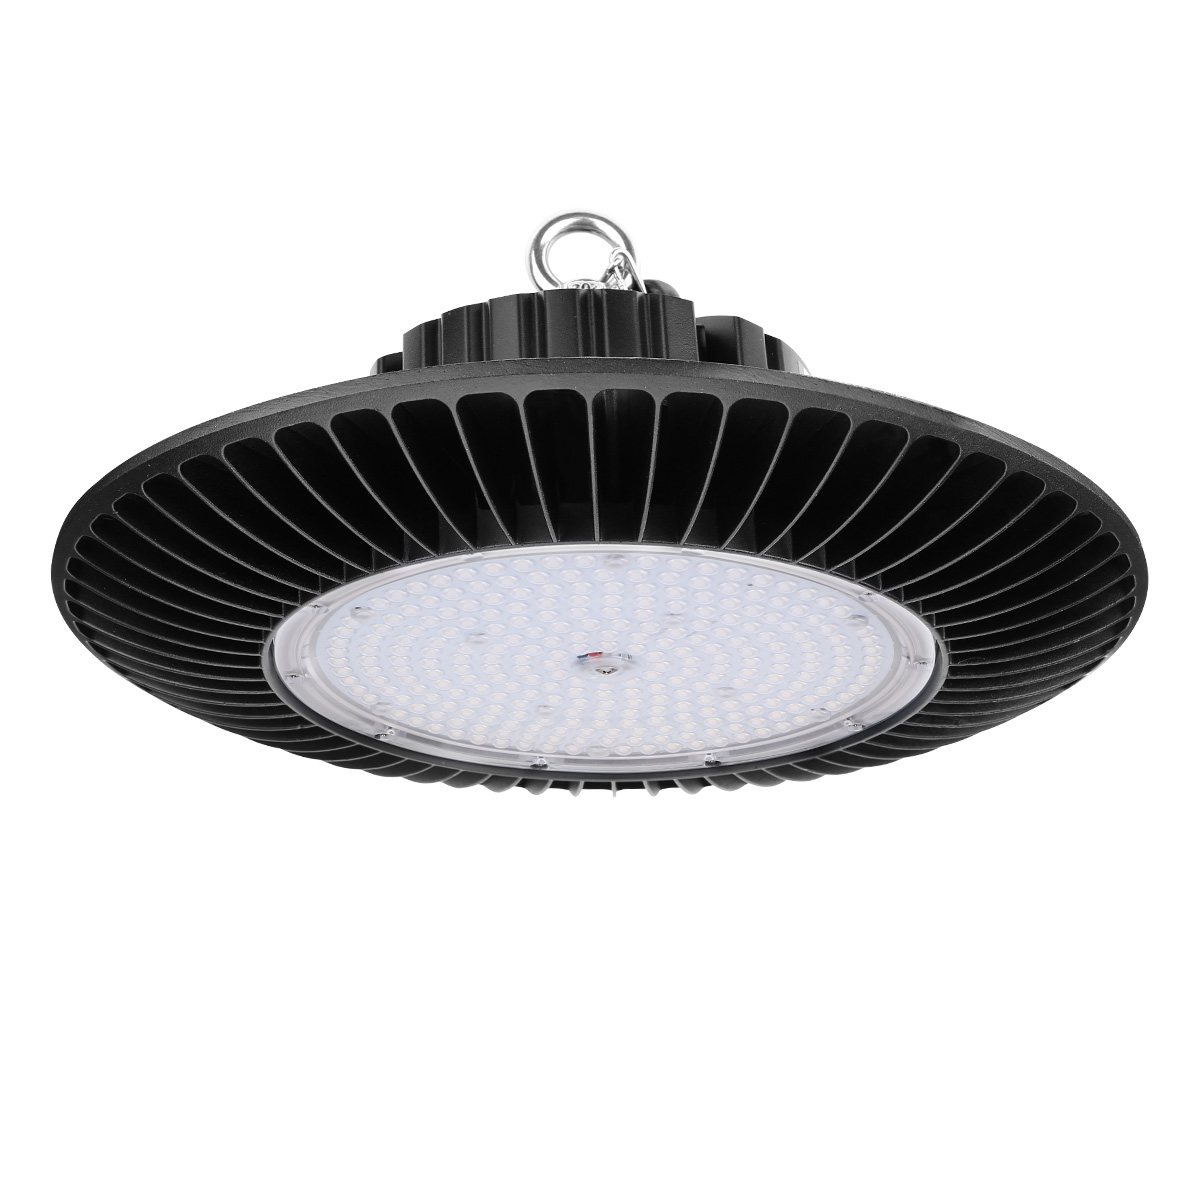 hight resolution of 200w ufo led high bay lights with philip leds dimmable 25000lm 400w hps mh bulbs equivalent ul dlc listed best led high bay warehouse lighting fixture